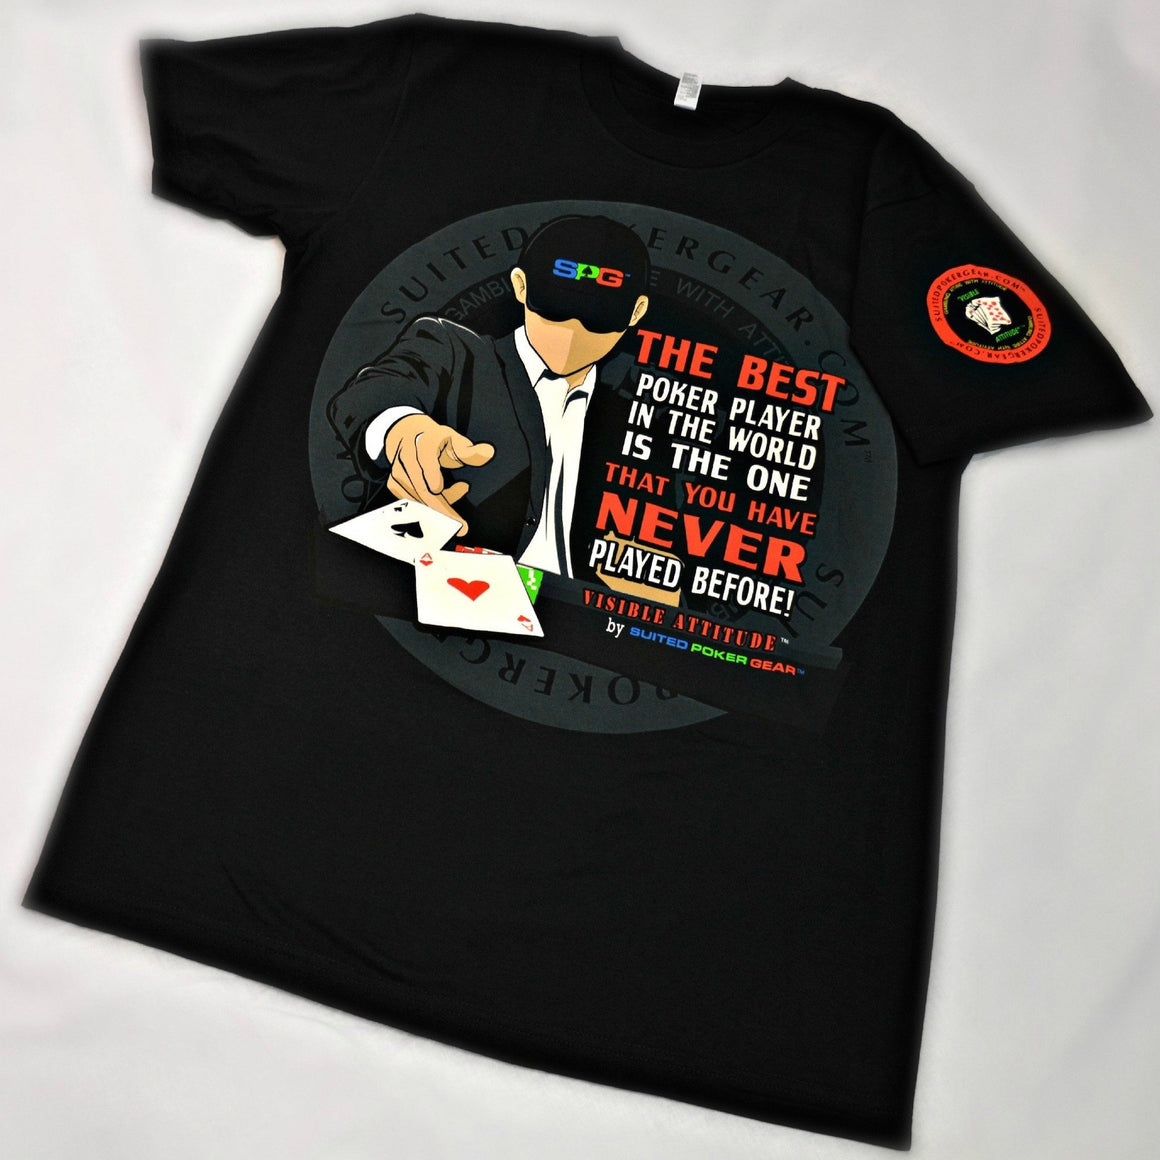 """Best Poker Player in the World"" - Suited Poker Gear"